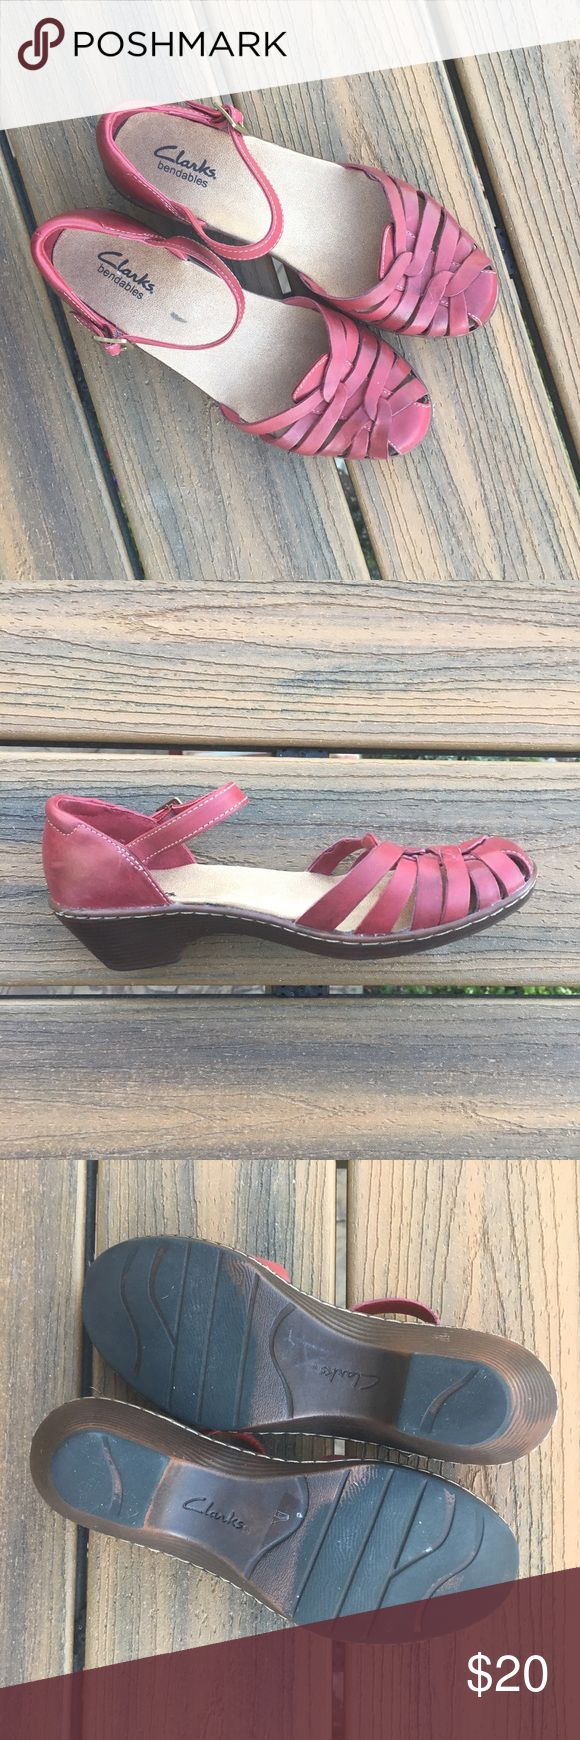 Red Clarks Sandals Mary Jane Excellent condition. They are very cushy and soft. Feel free to ask questions or make an offer! Would fit a 7 or 7.5 Clarks Shoes Sandals